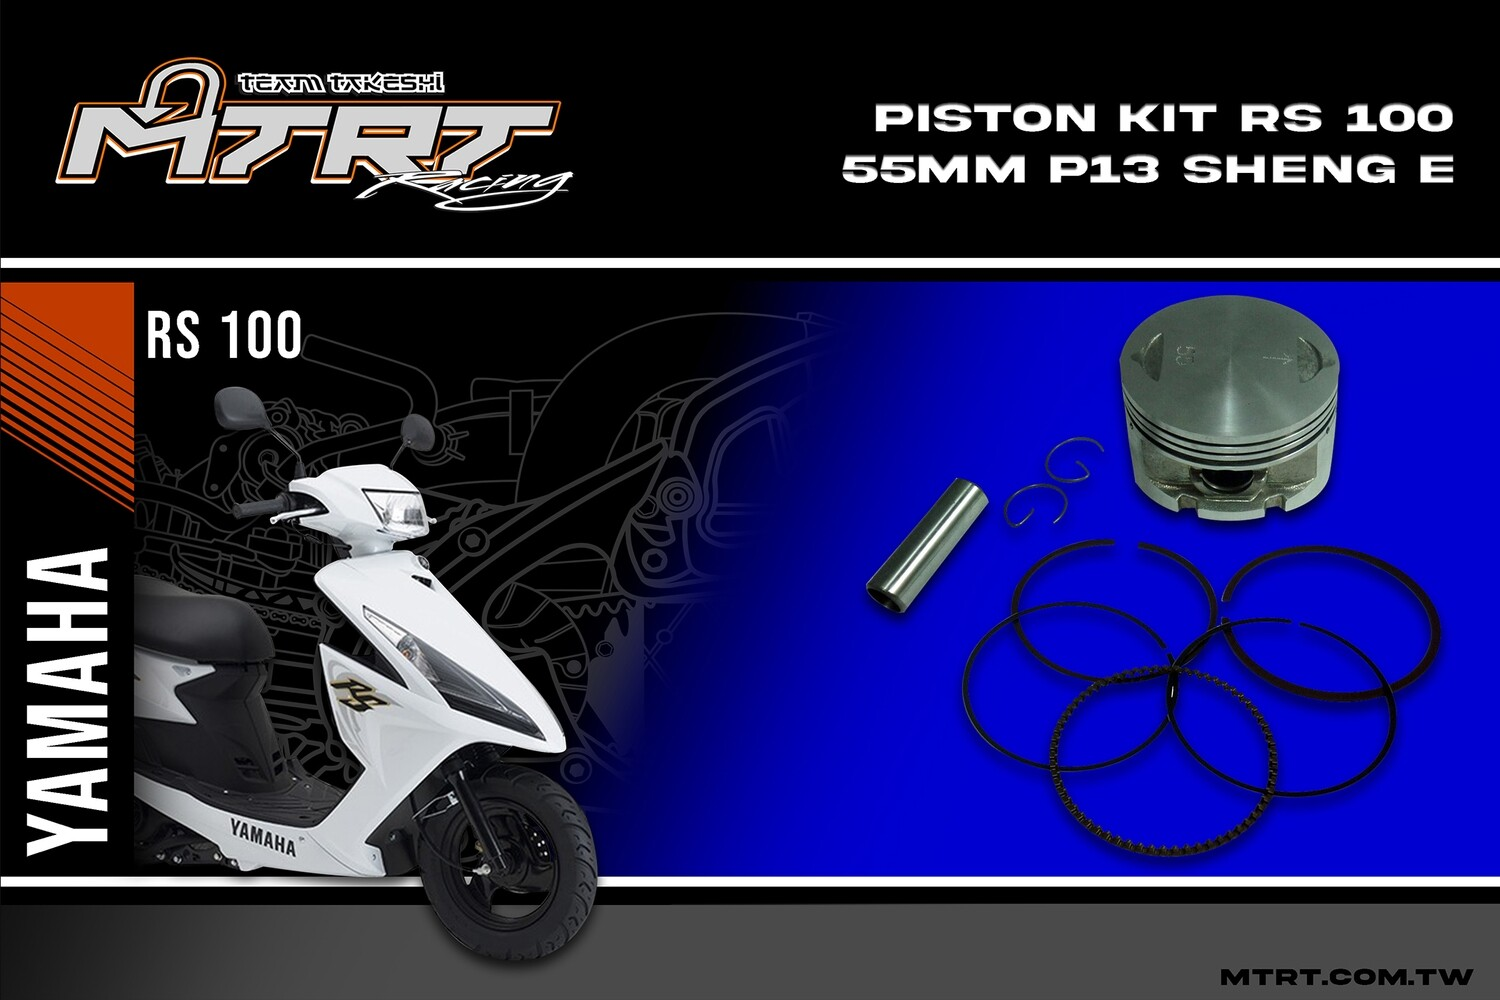 PISTON KIT RS100 55MM   13  SHENG E